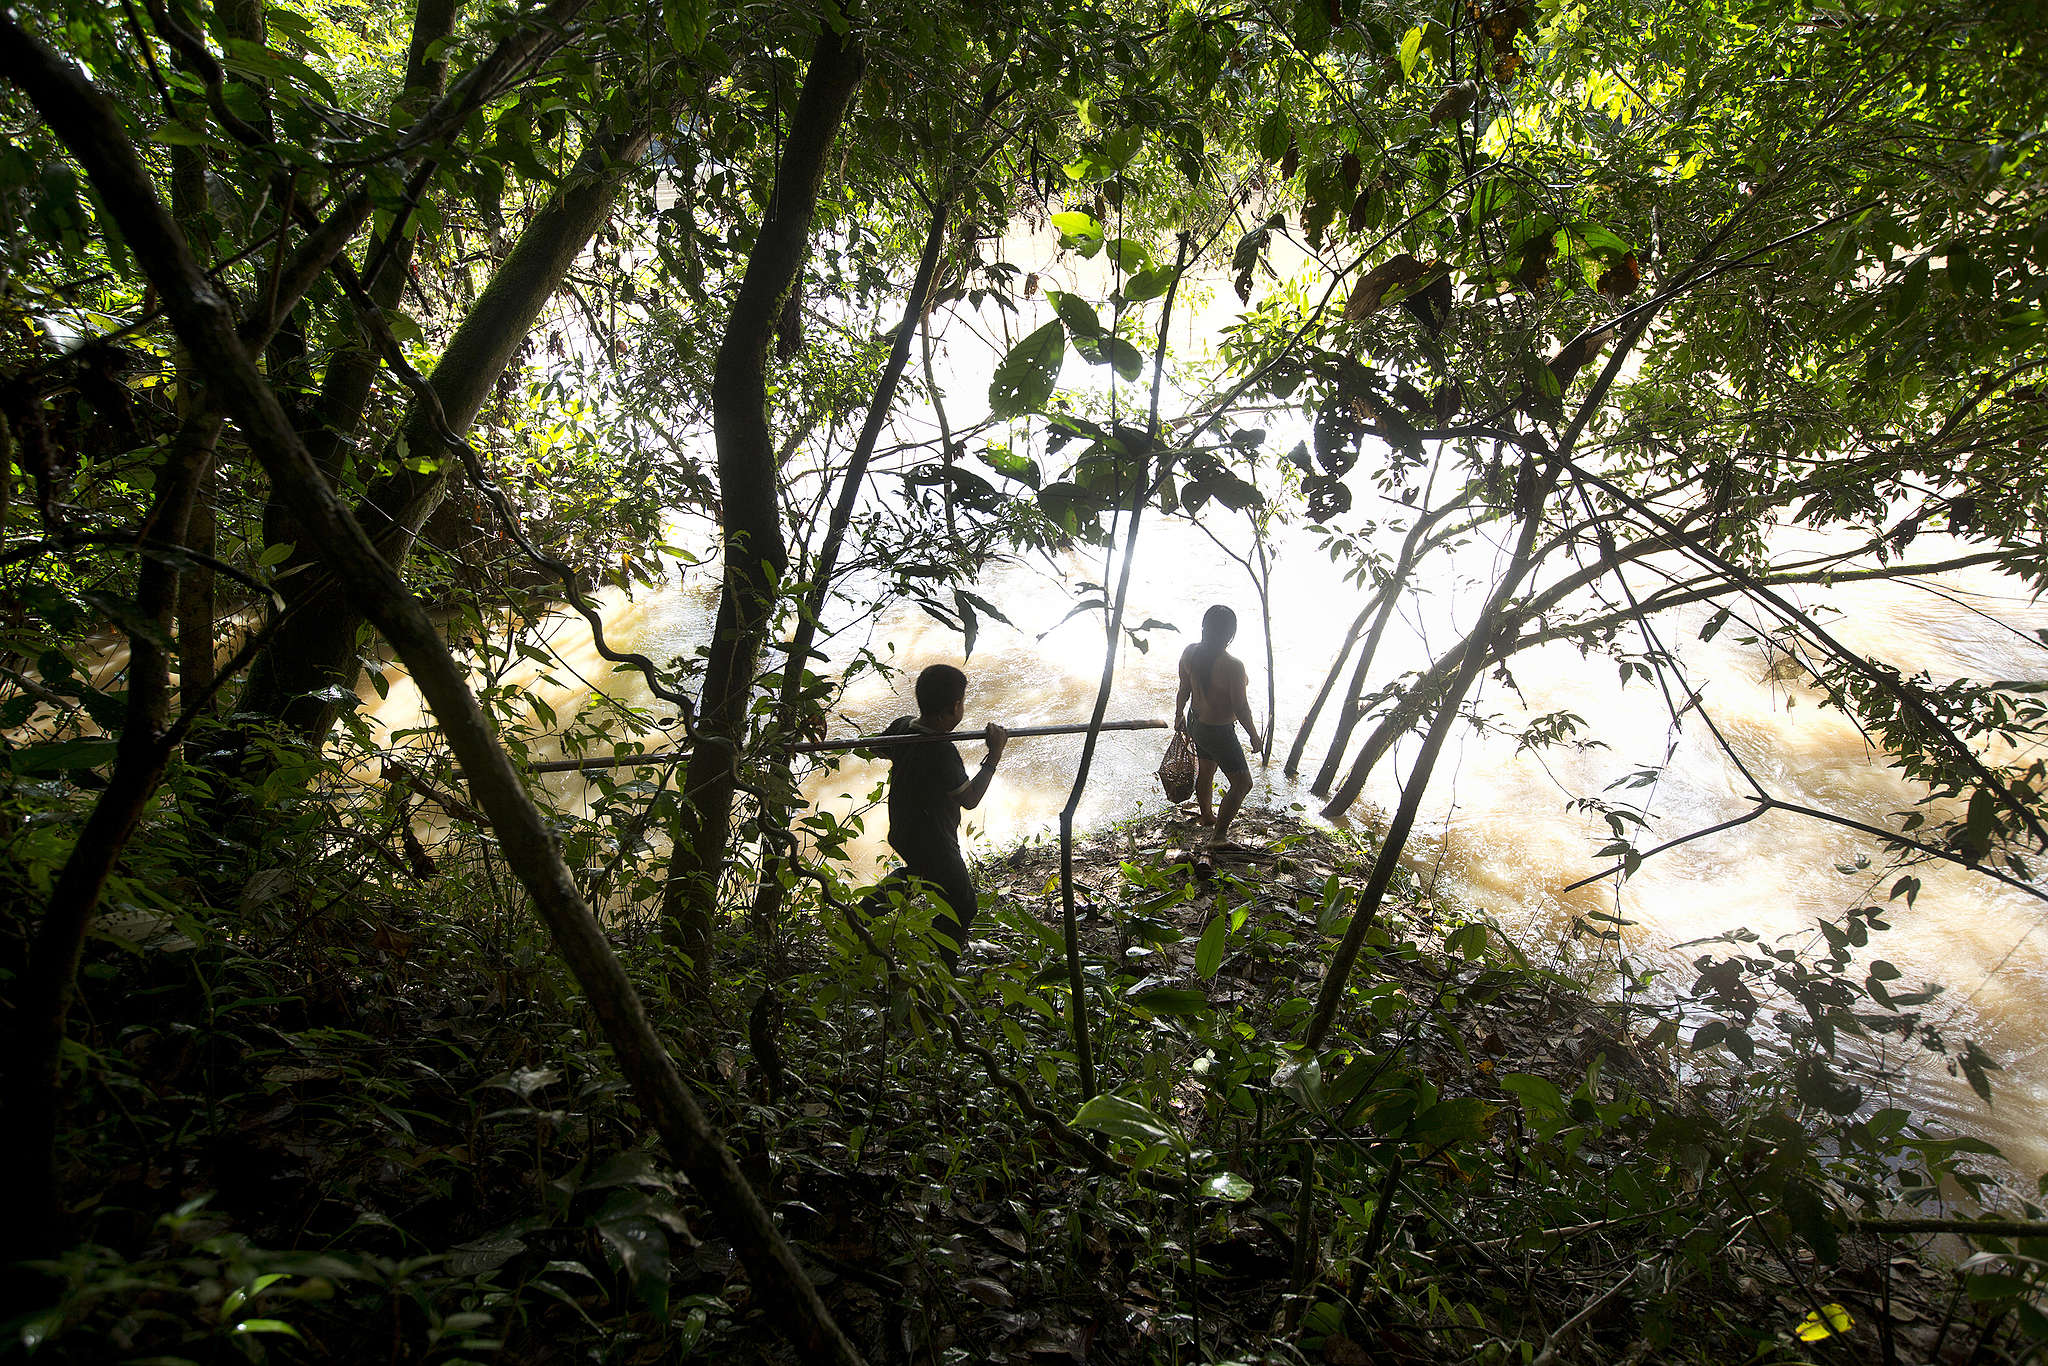 The Waorani and Kichwa Indigenous groups, among others, live in the Yasuni National Park in Ecuador. This precious part of the Amazon is home to millions of animal species and is under threat from the impact of oil exploration. © Karla Gachet